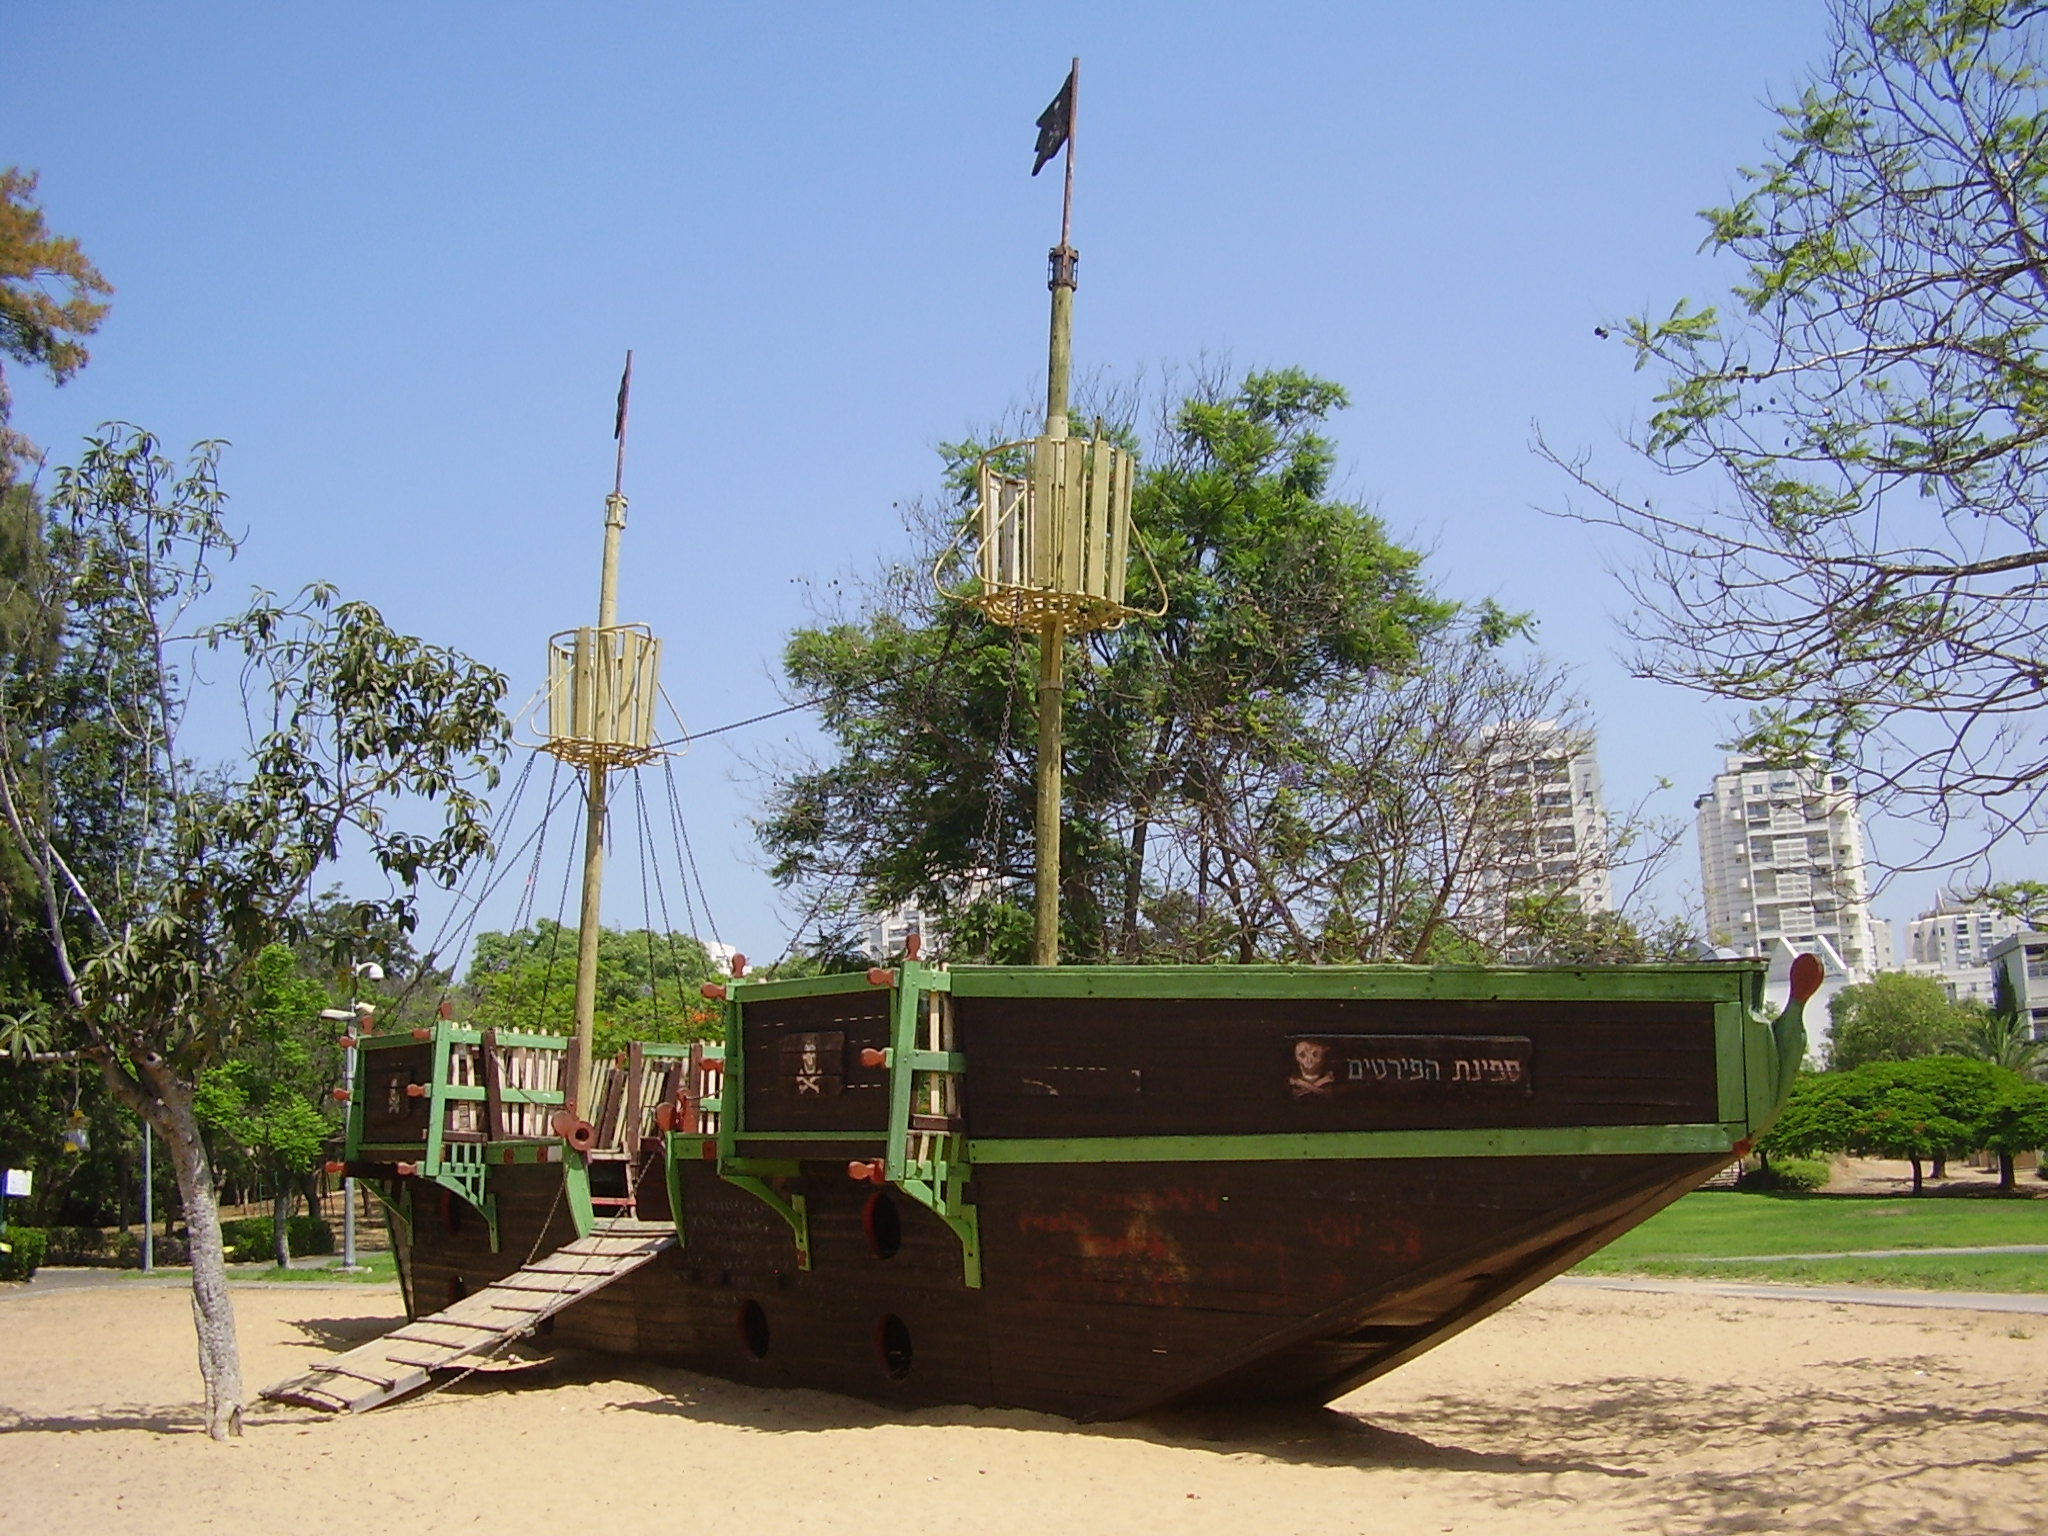 File:PikiWiki Israel 13983 Pirate Ship in a Givatayim ...